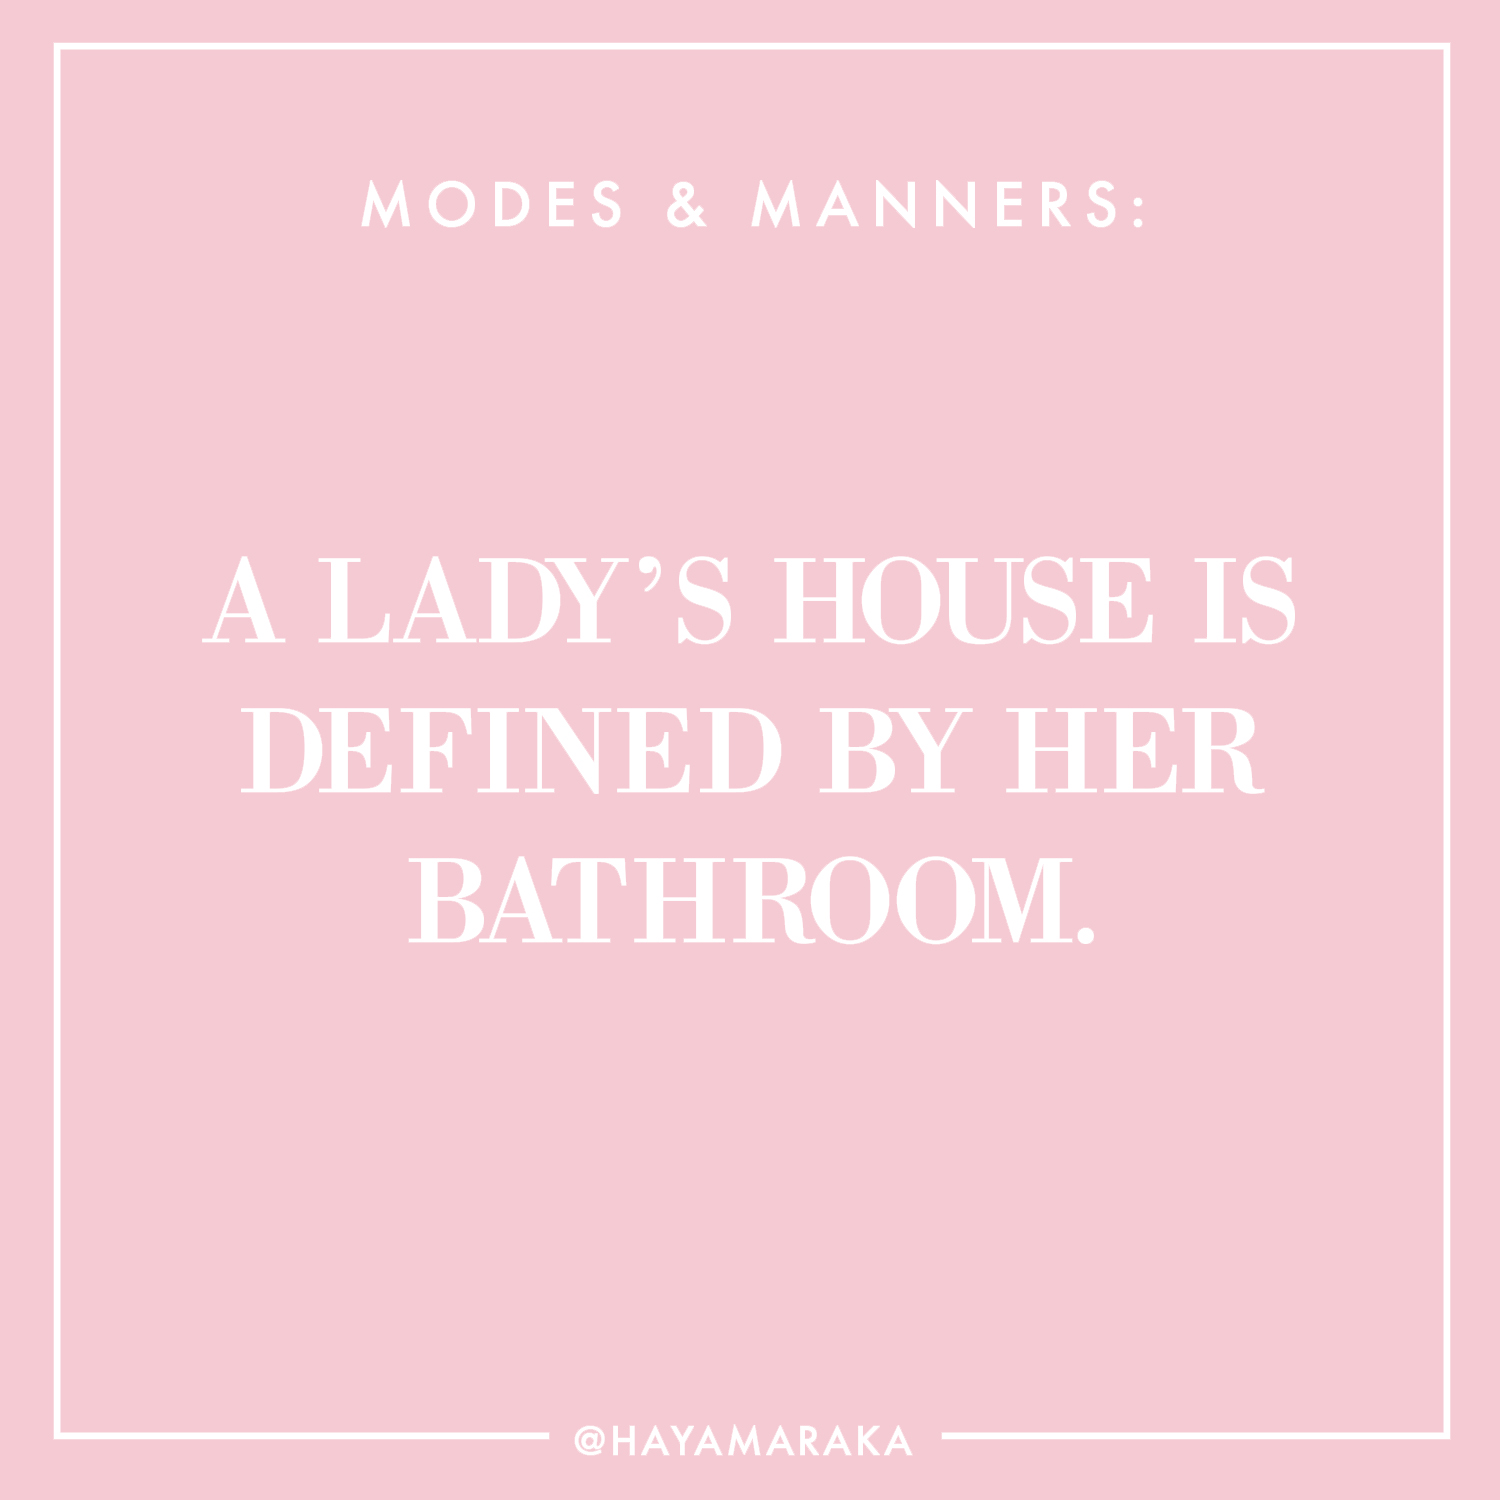 Haya's Modes & Manners